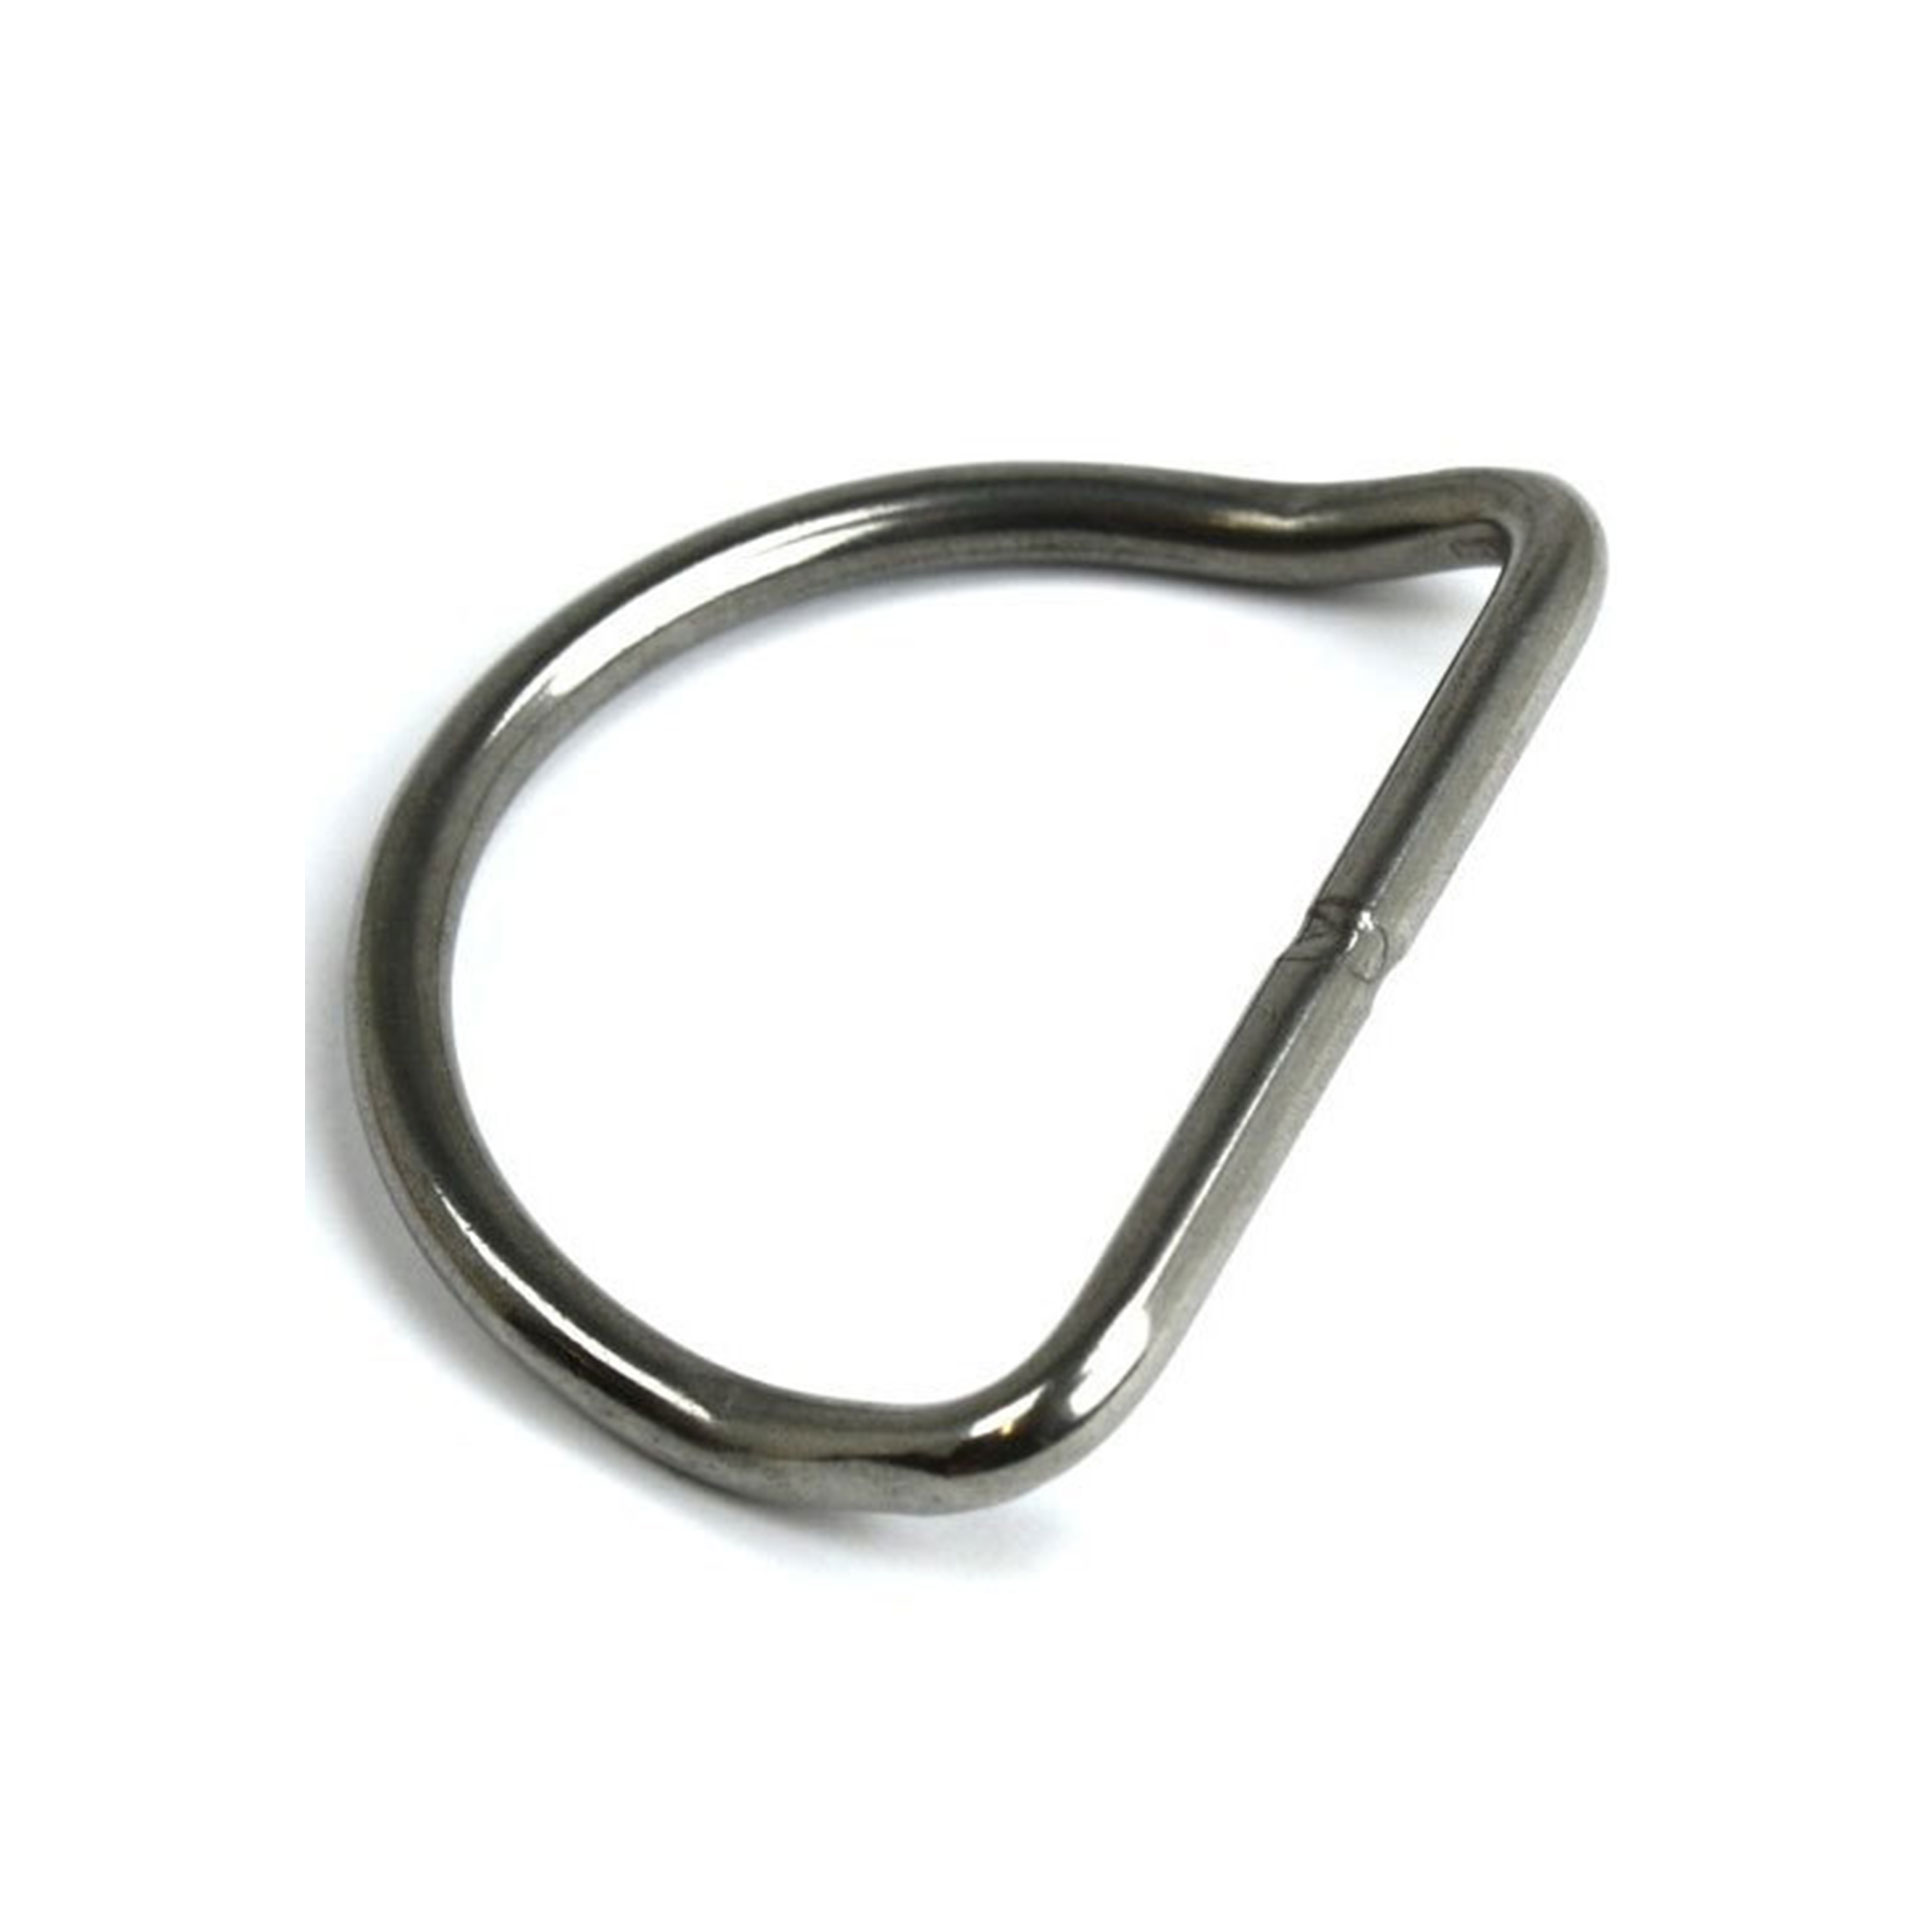 D-Ring Bent (5 CM / 2 IN)